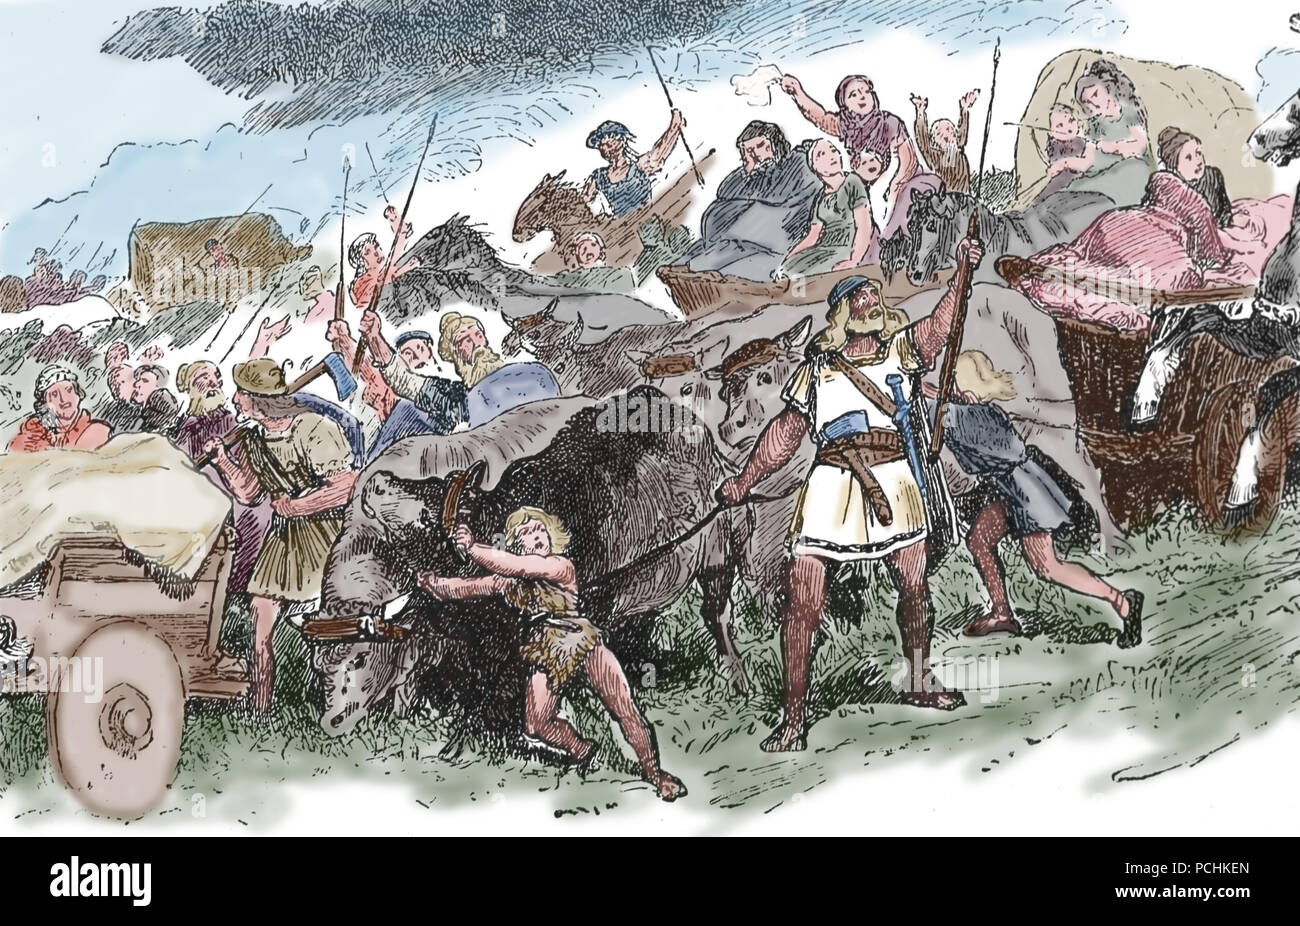 Migration Period (Germanic Tribes and the Huns). 4th-6th century. Engraving, 1882. Color. - Stock Image